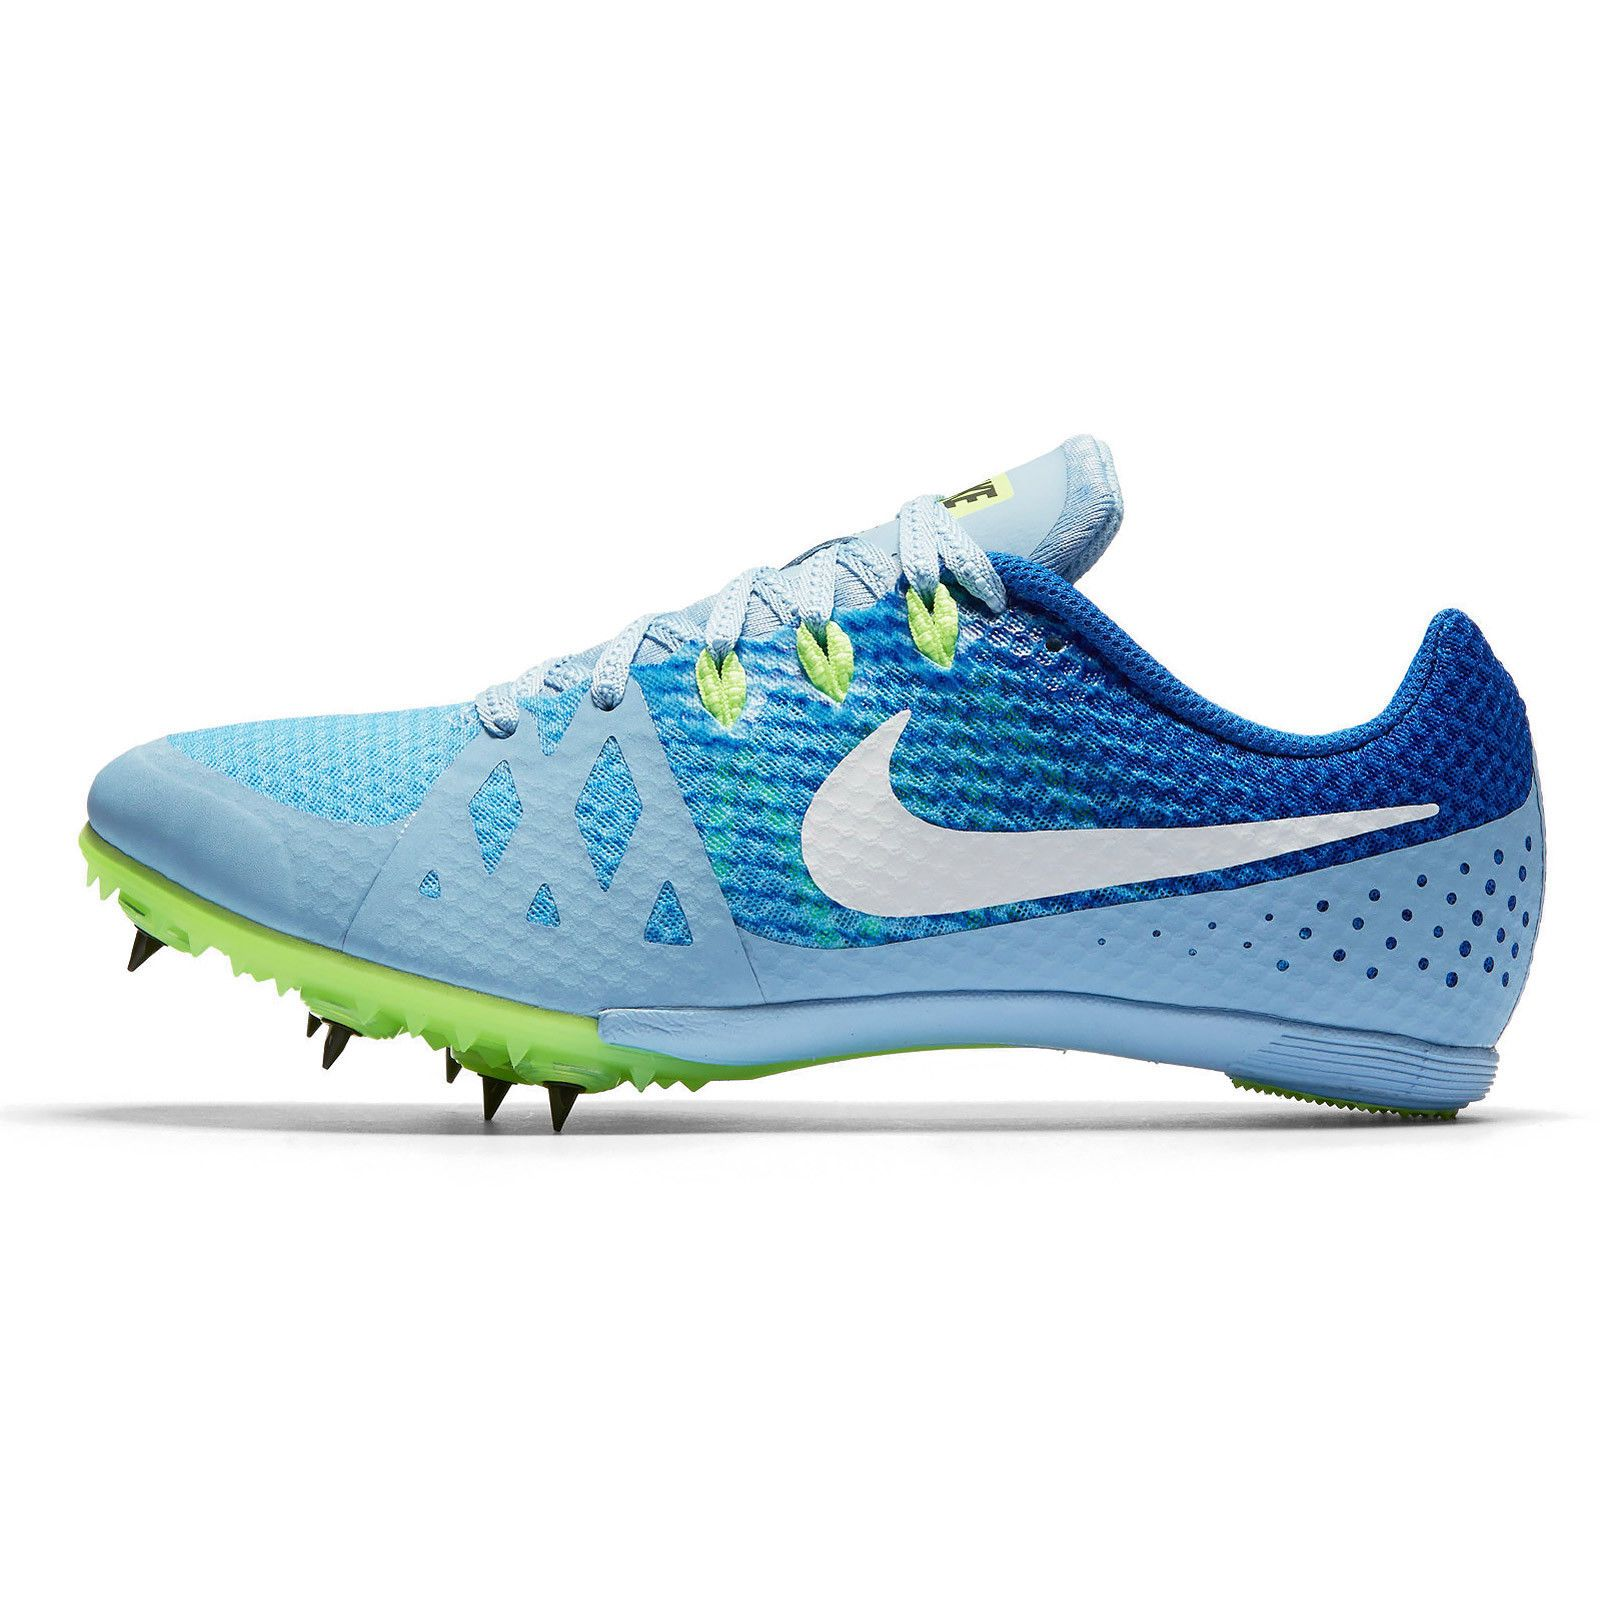 Running spikes, Track shoes, Spike shoes